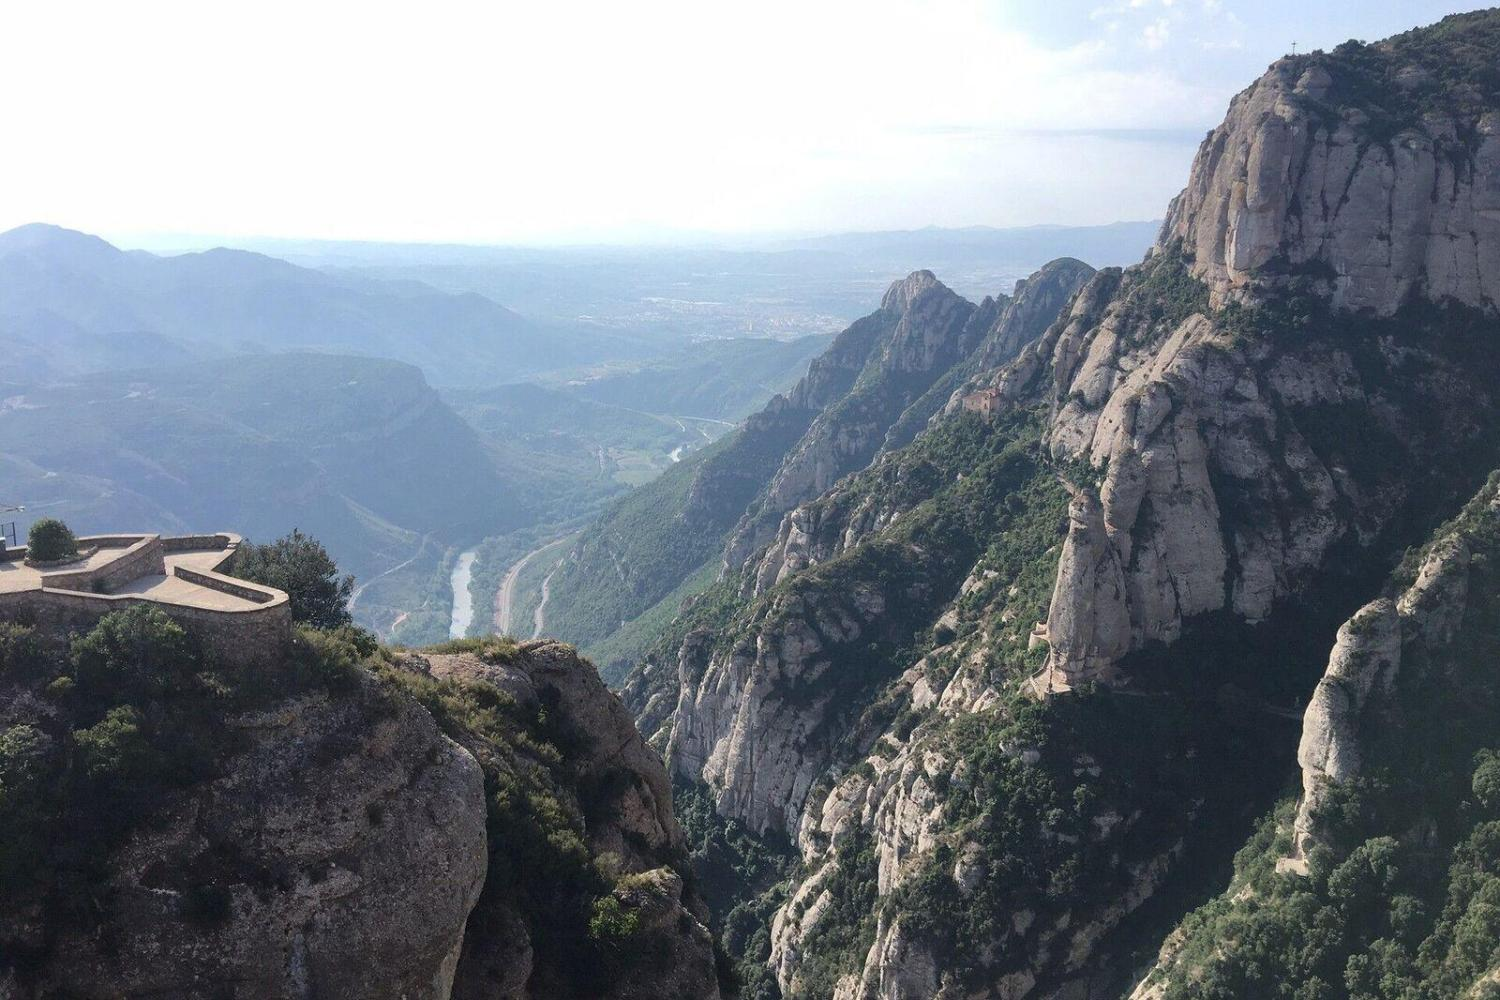 Barcelona Highlights & Montserrat Mountain With Cog-Wheel Train